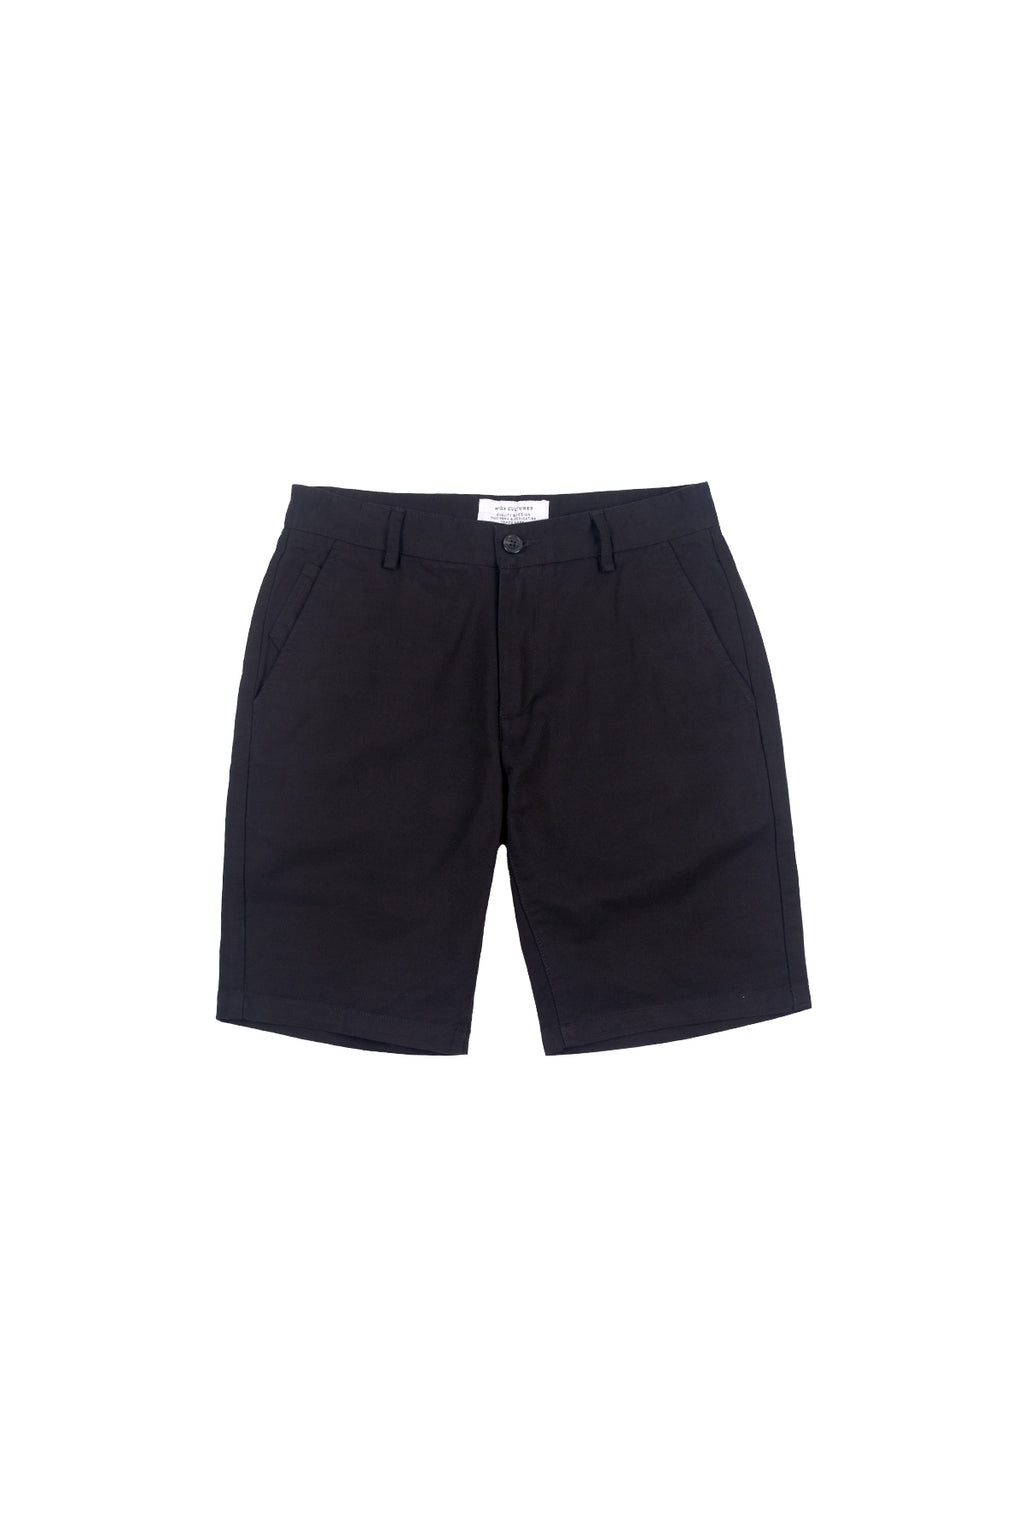 STANDARD-FIT CHINO SHORT PANT | BLACK - 94